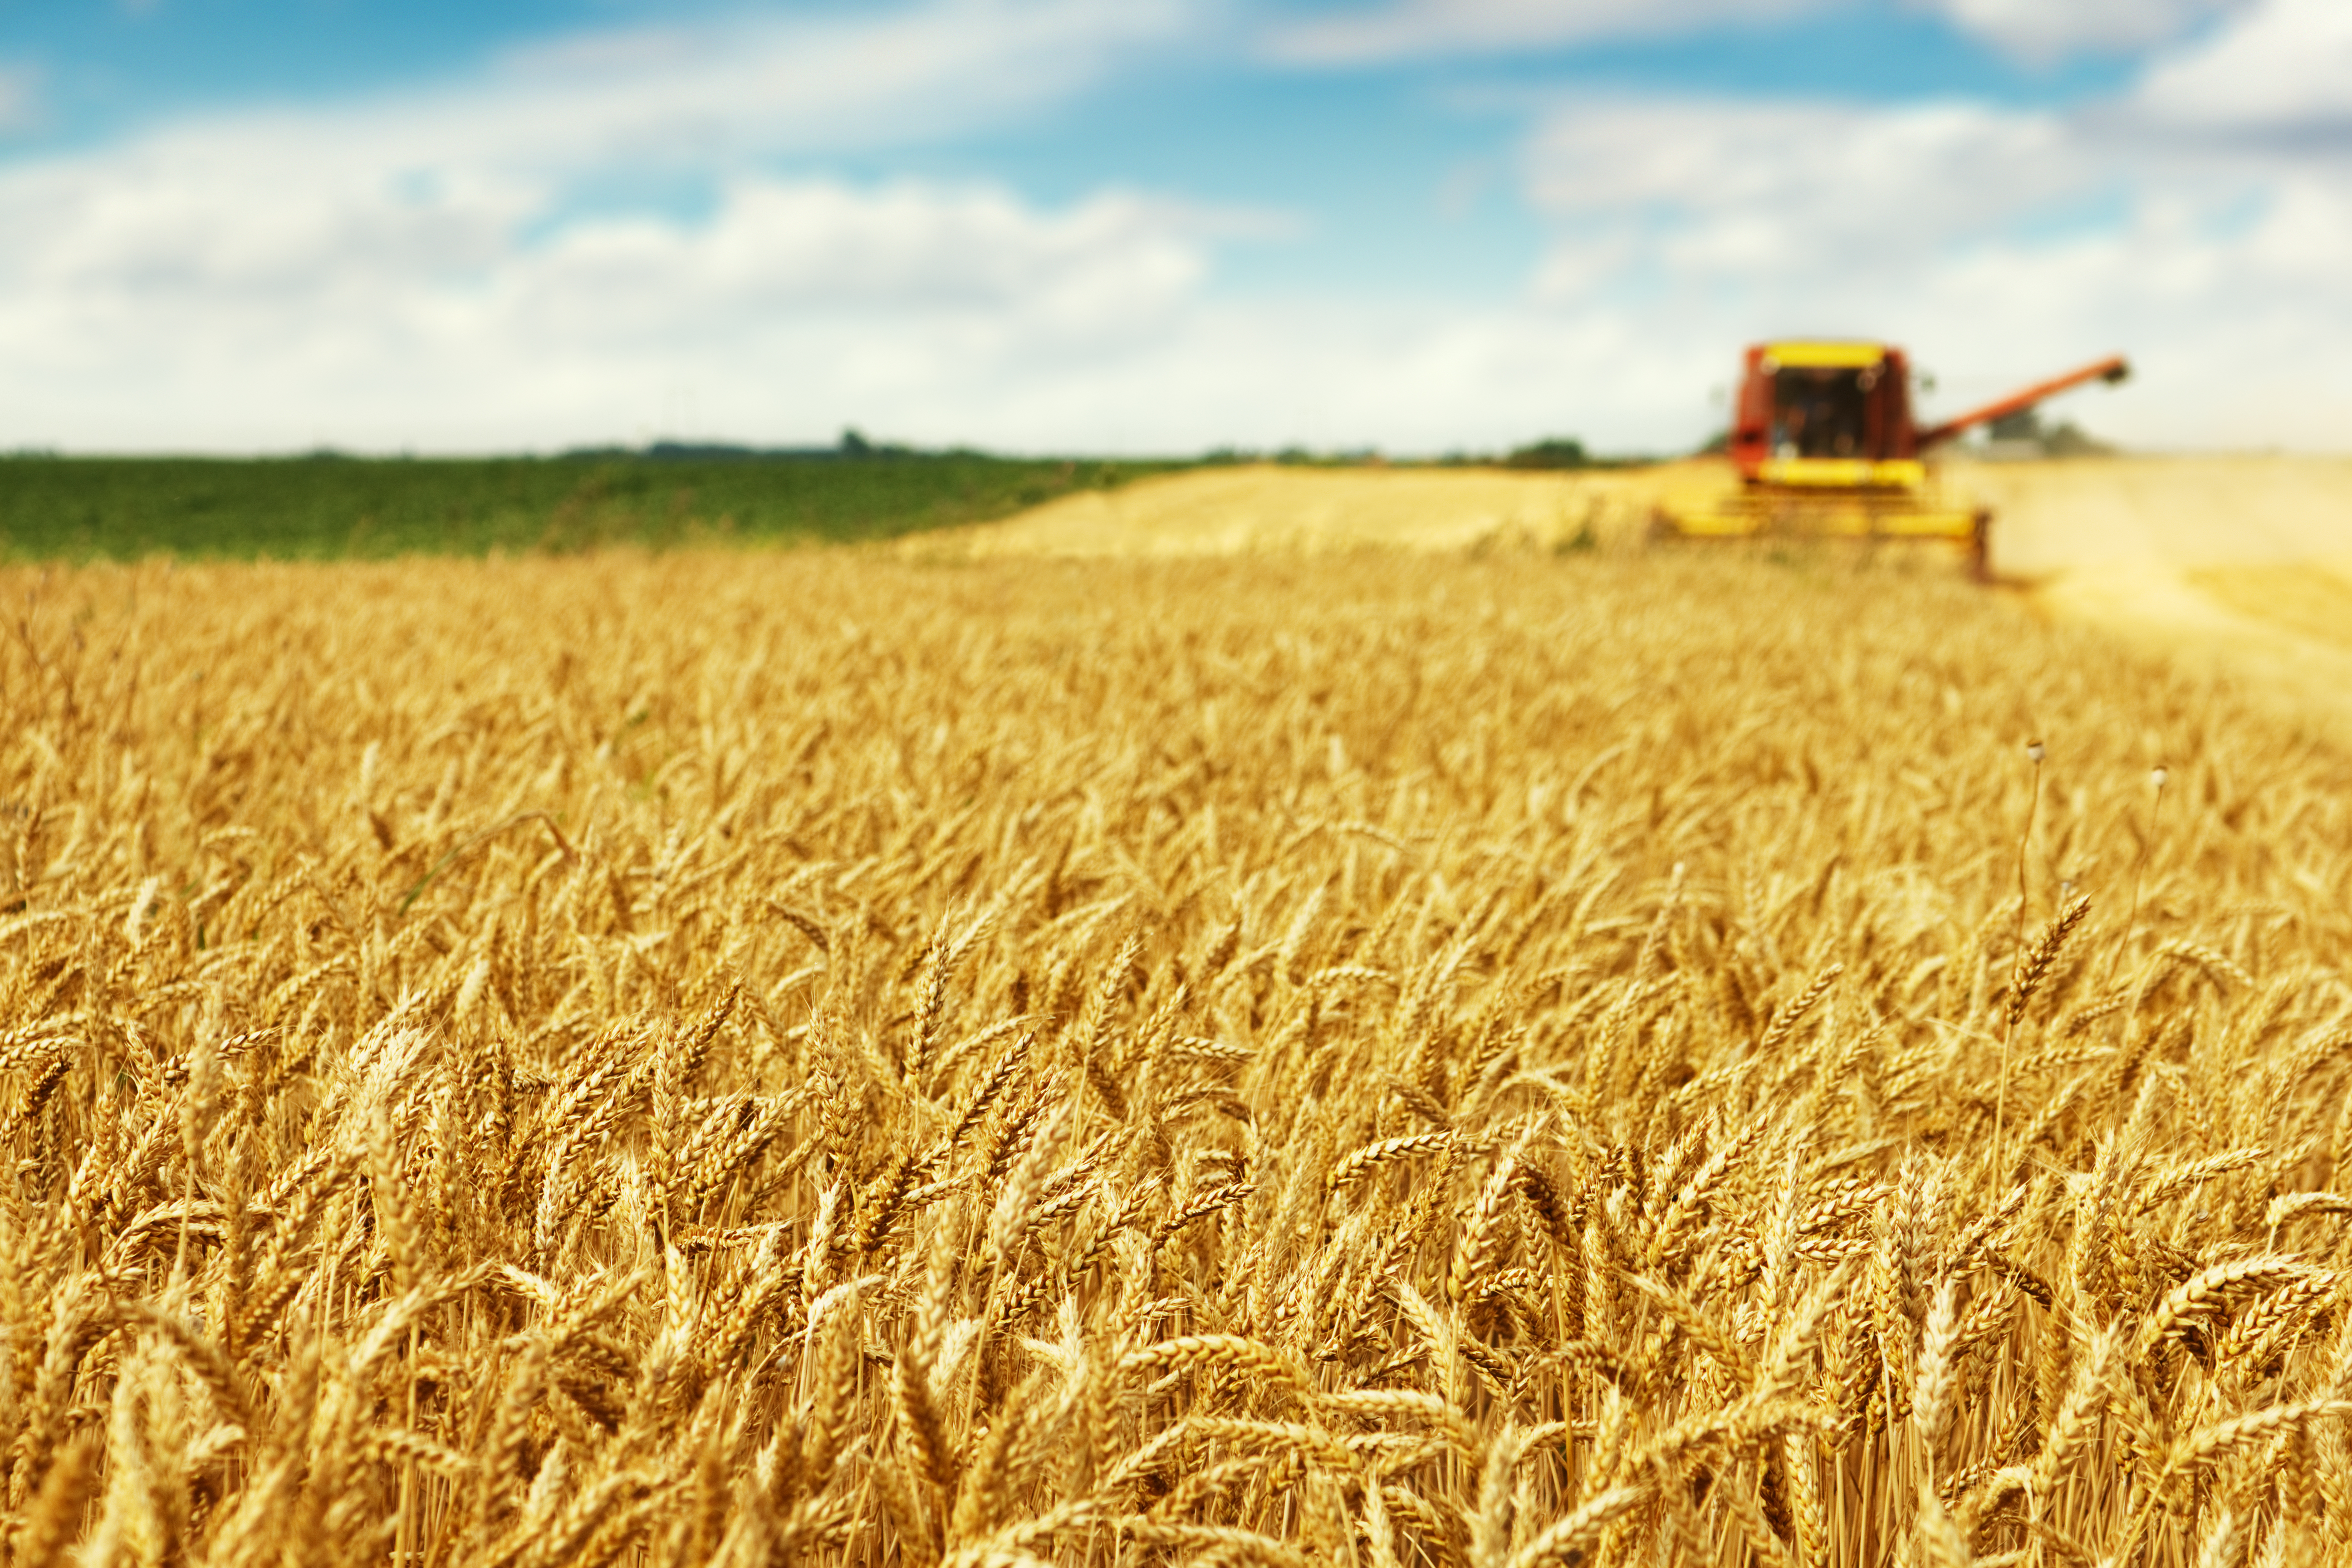 Romania to post higher sunflower, rapeseed, maize output in 2017 - EC